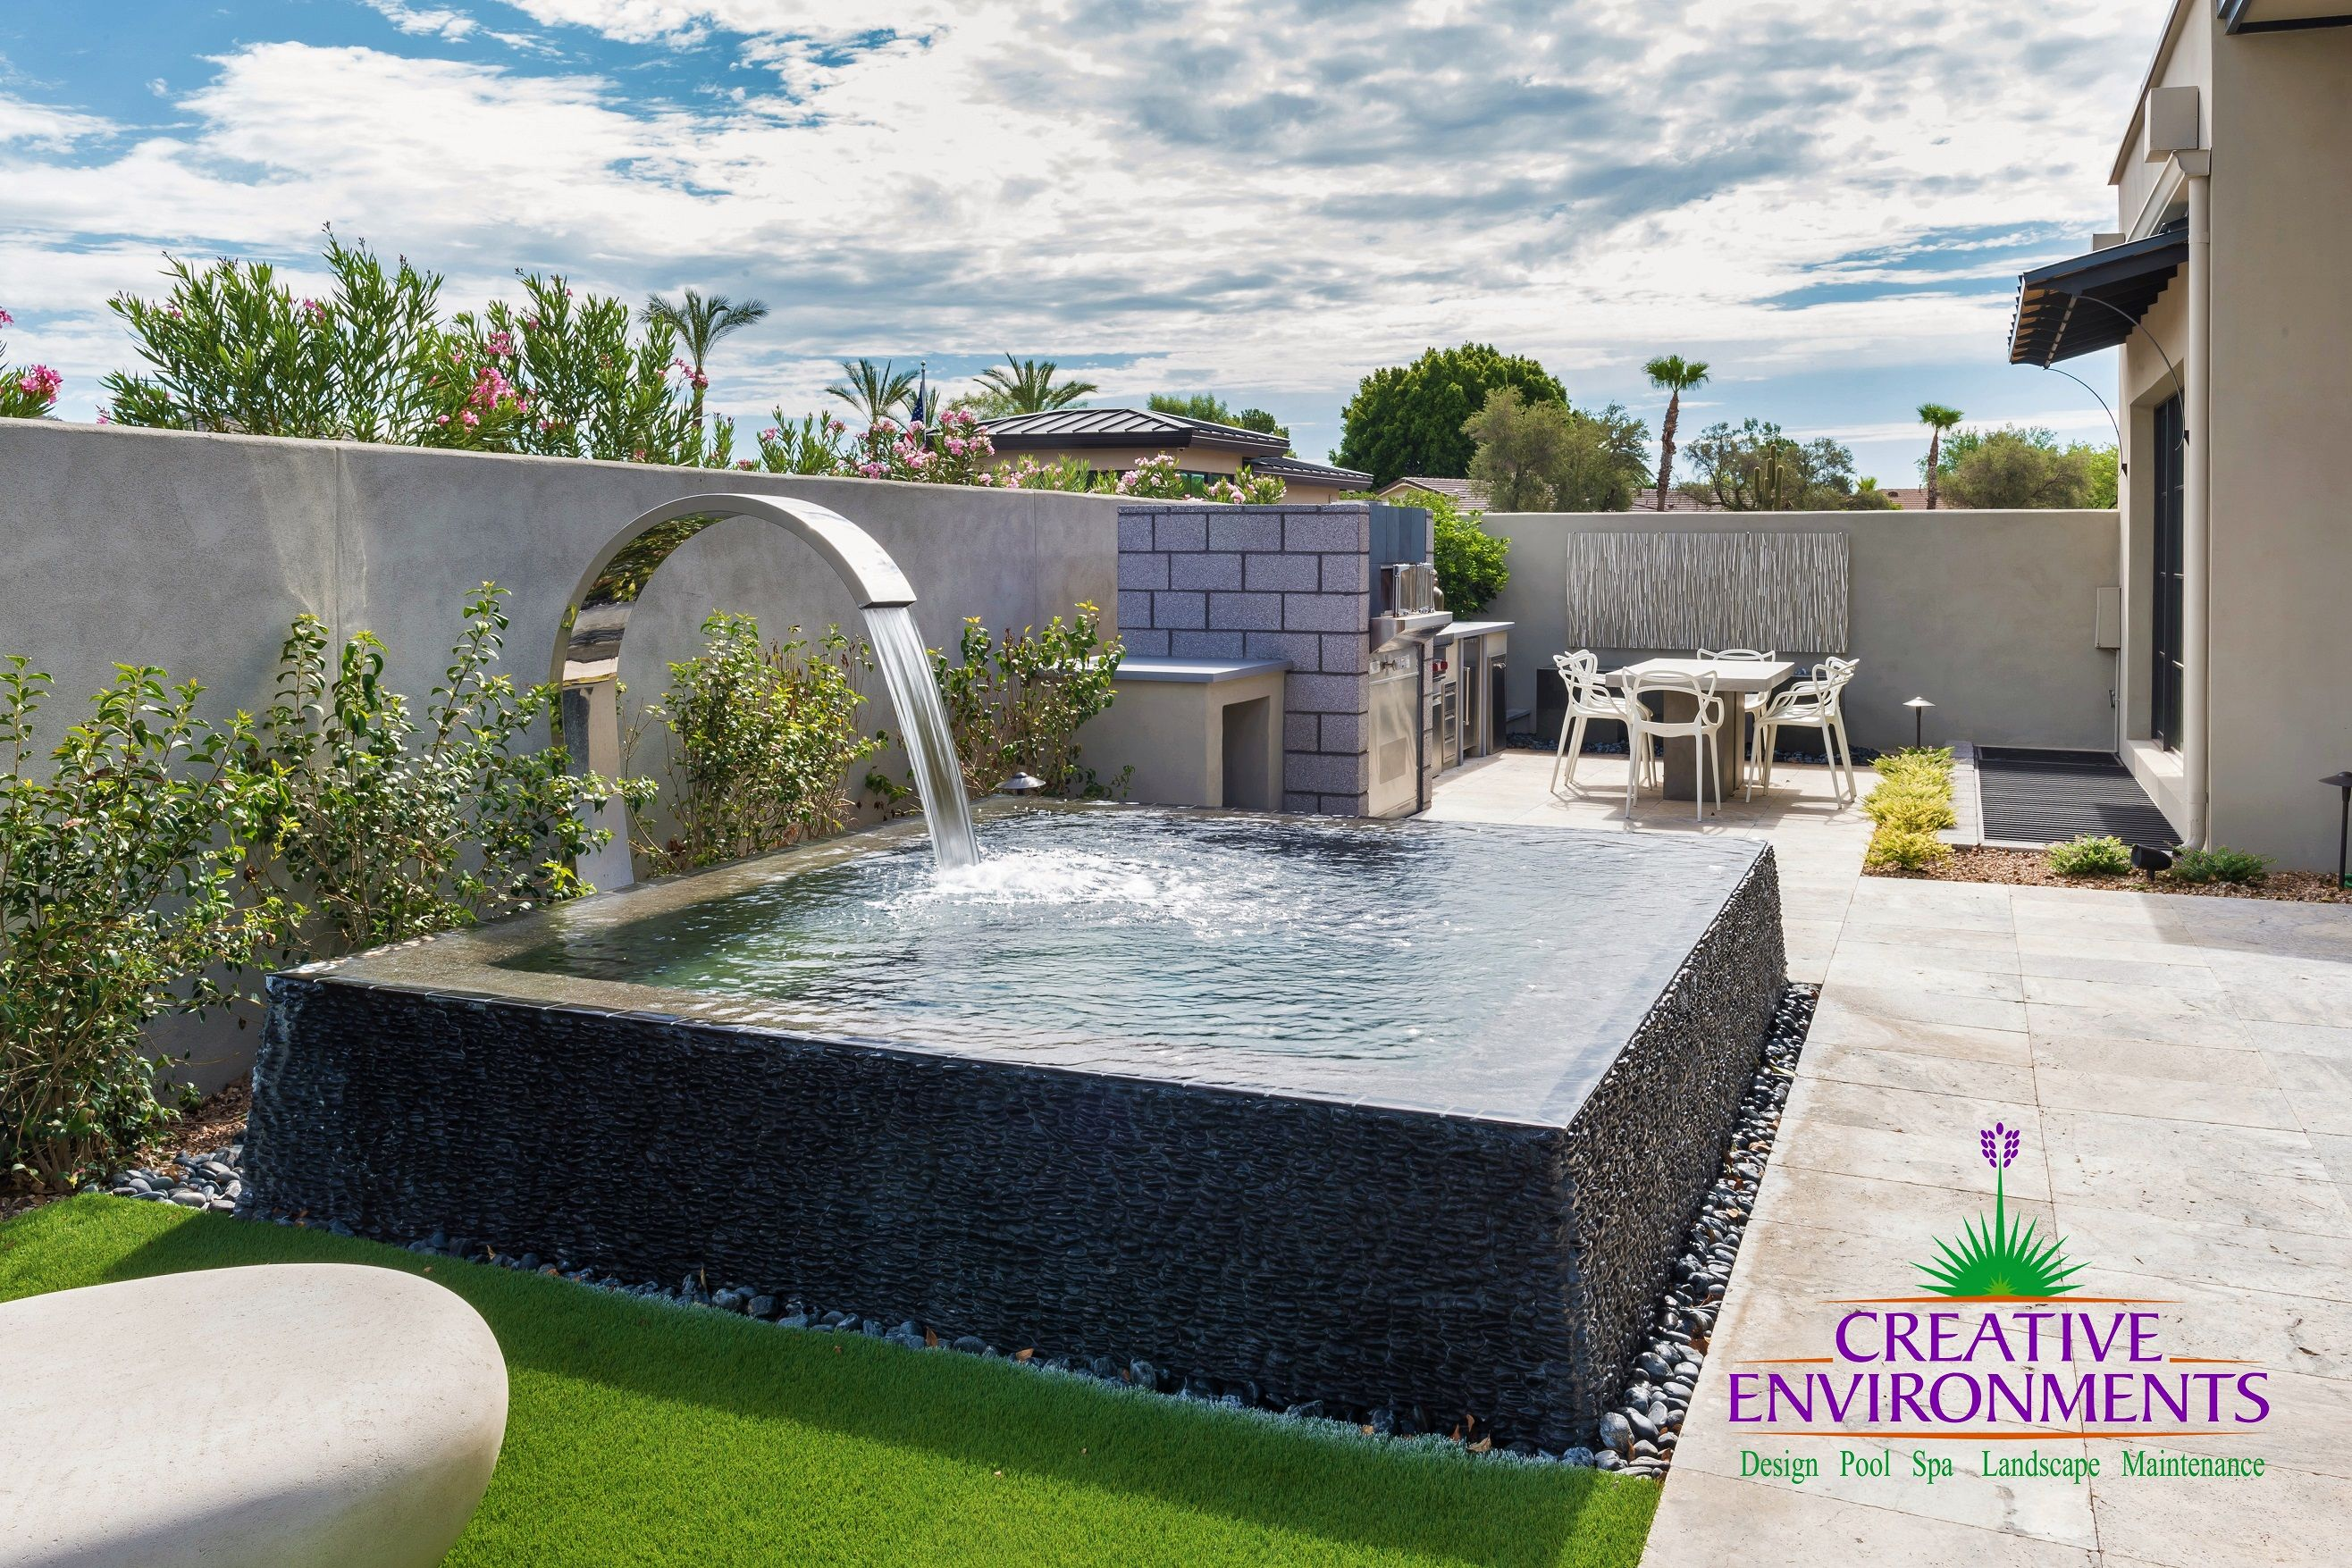 Pin By Creative Environments On Mountain Shadows Commercial Build Pool Designs Indian Home Design Sun Shade